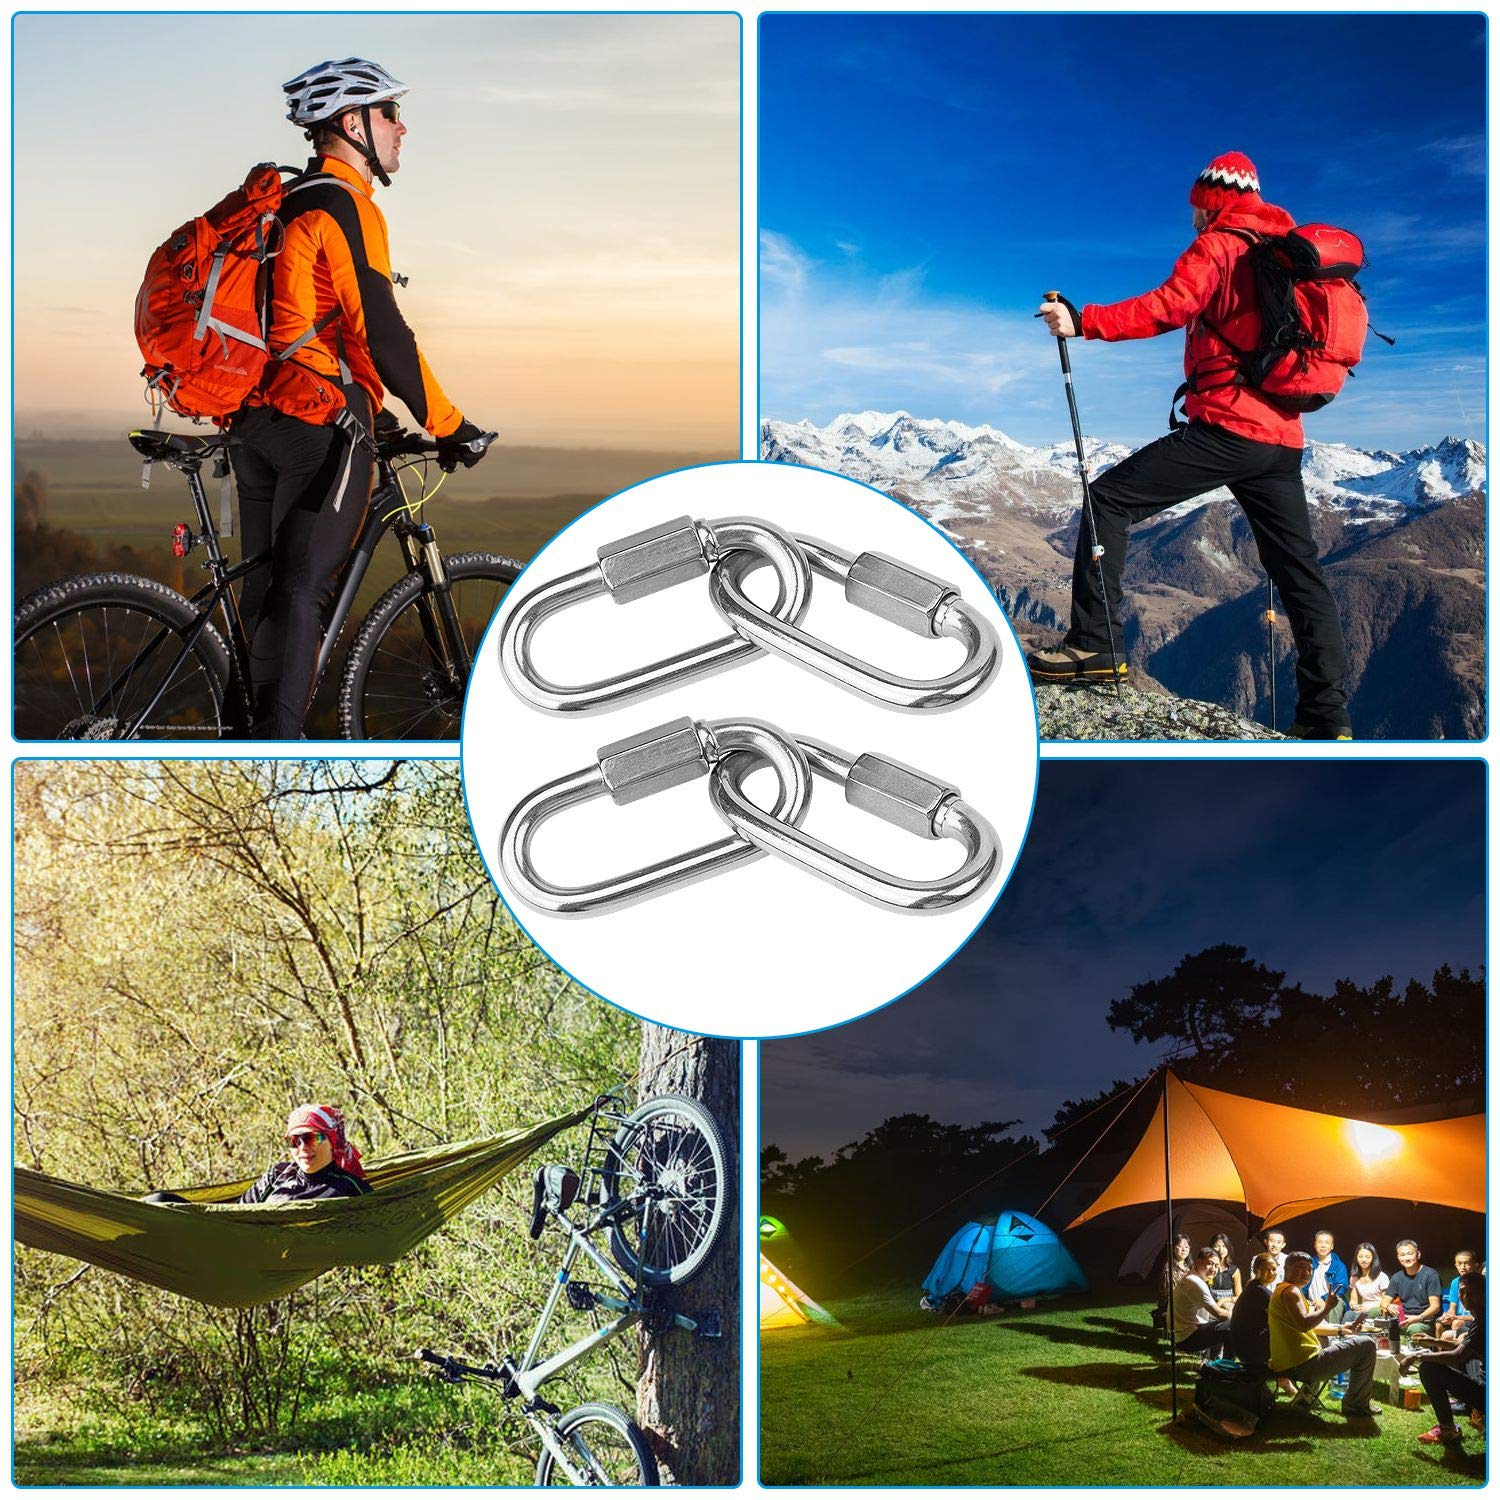 8Pack Stainless Steel 1//4 Quick Link Carabiner Clip 620lbs Capacity Locking Carabiner 2-3//8 Oval Locking Chain Links Outdoor and Gym Hammocks Hiking Heavy Duty Threaded Link for Camping Swing